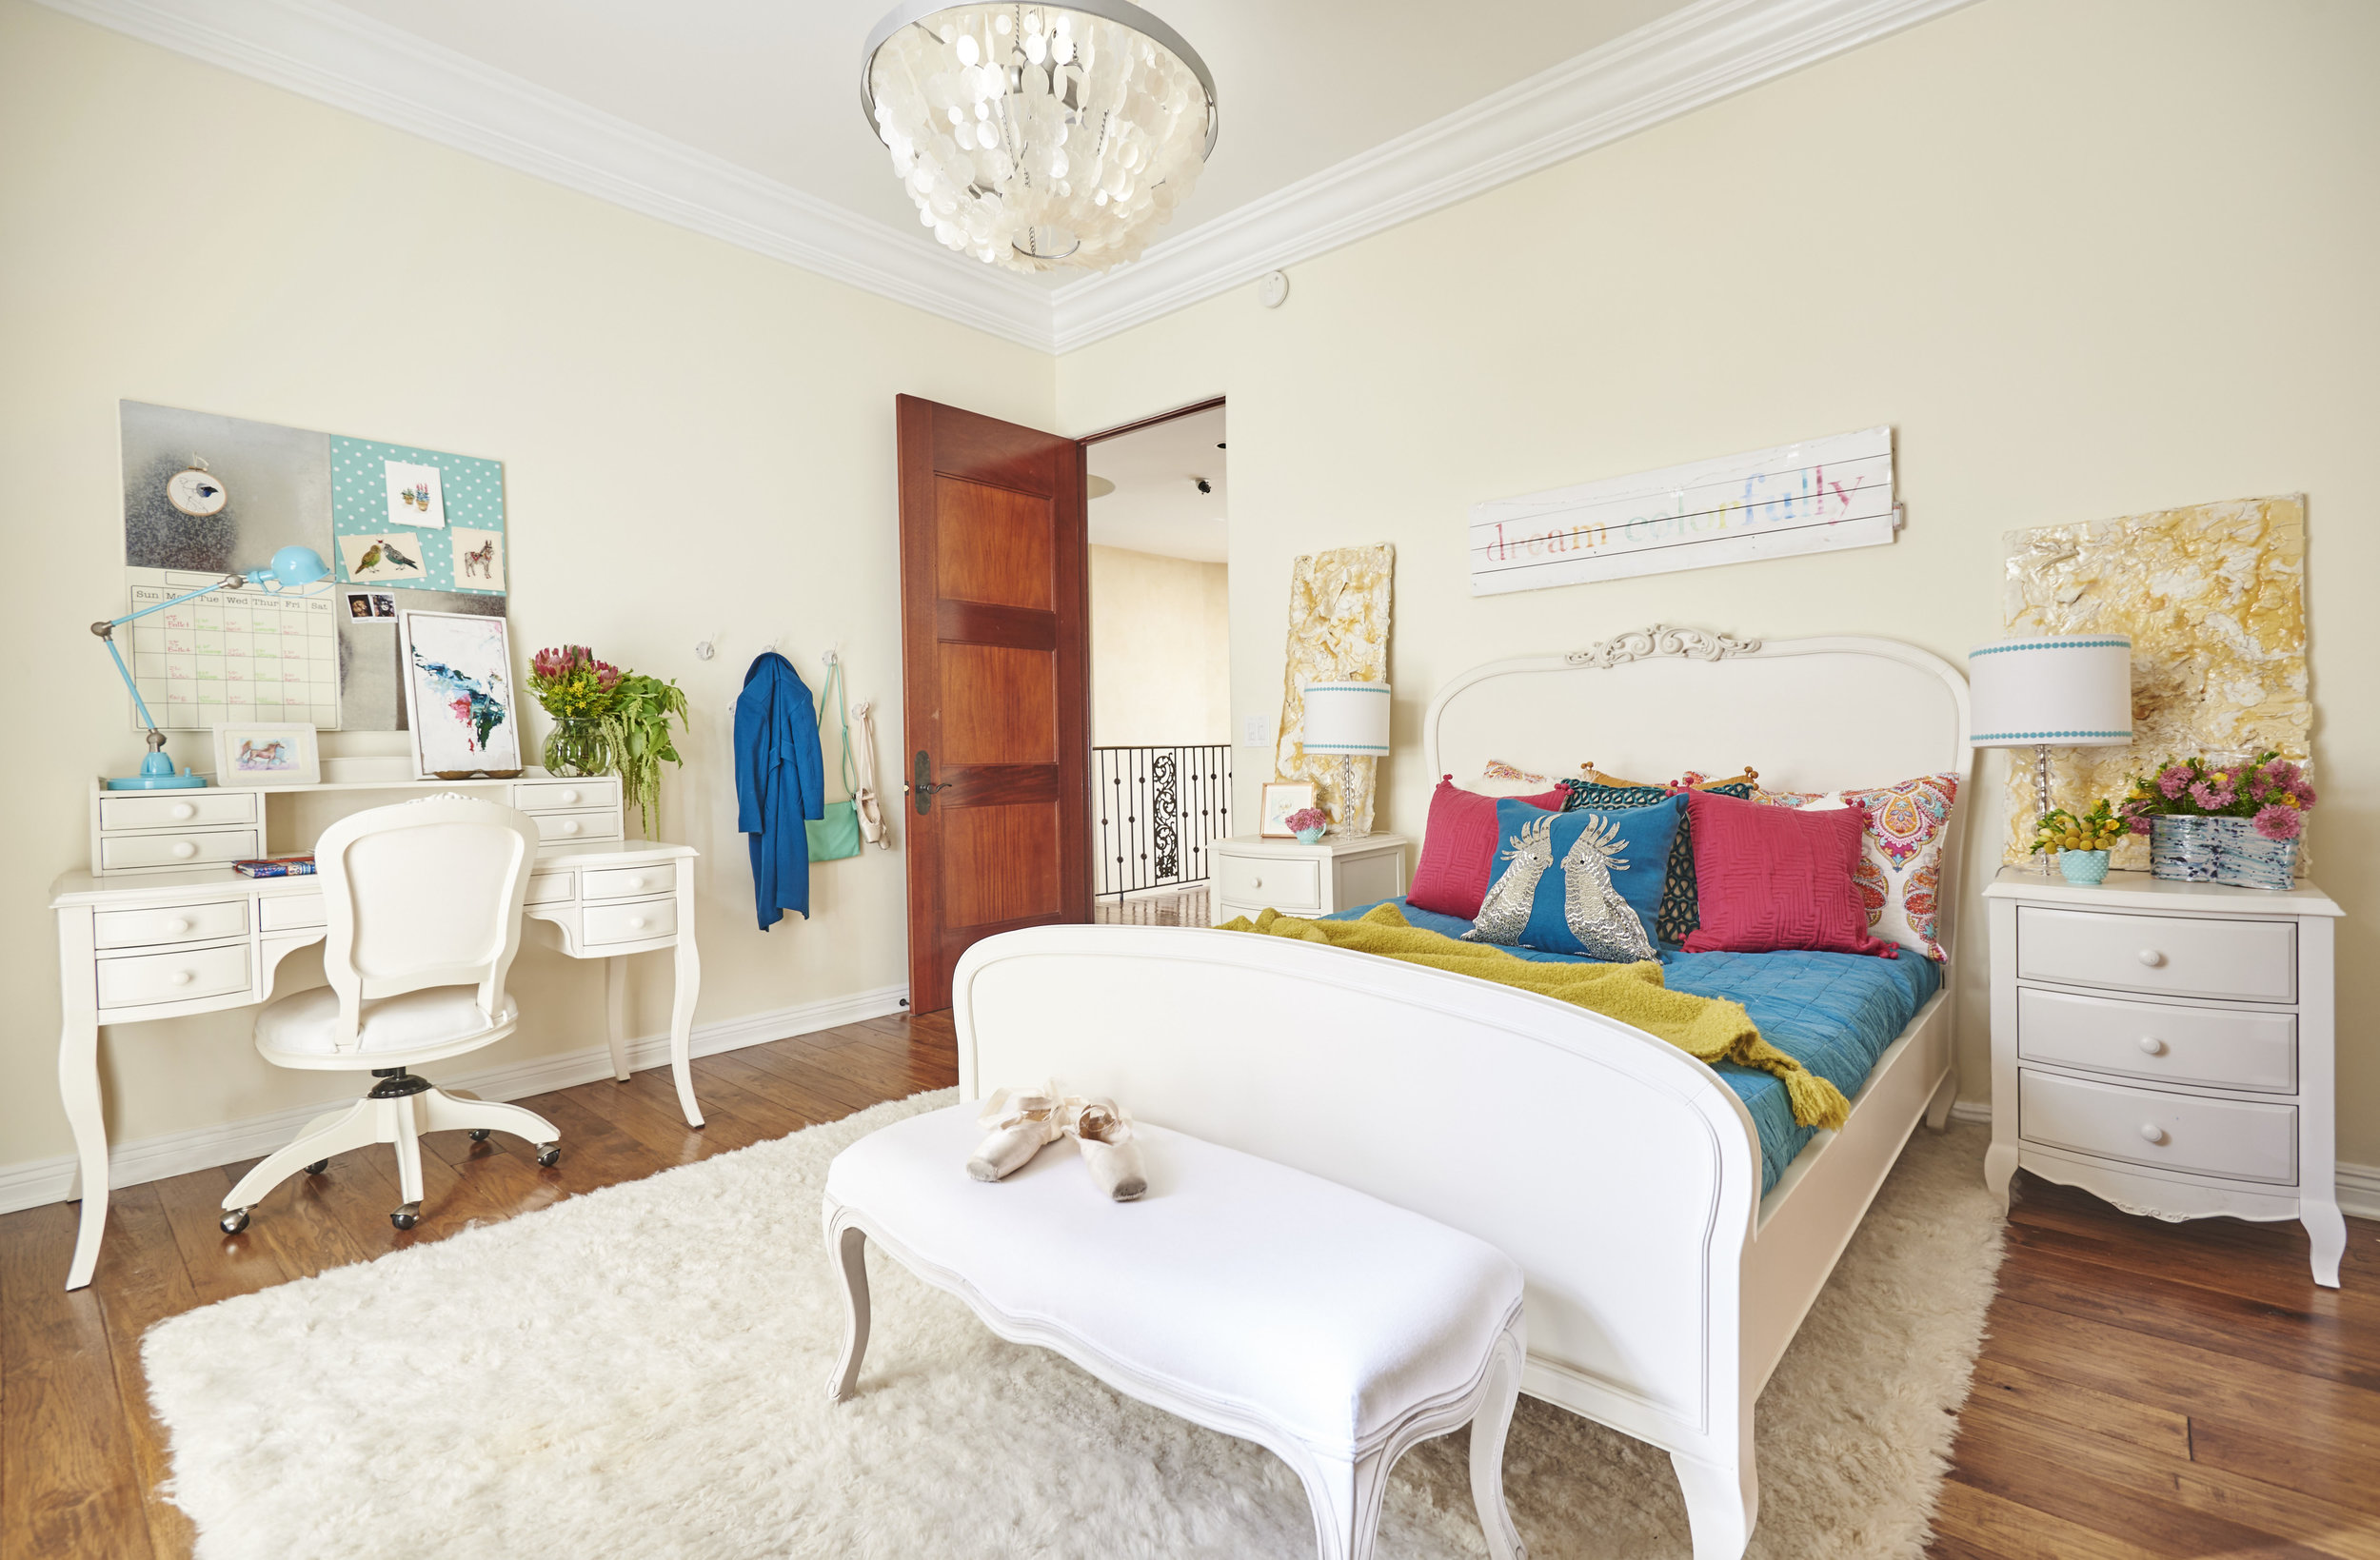 Teen Girl S Bedroom Design Sarah Barnard Design Story